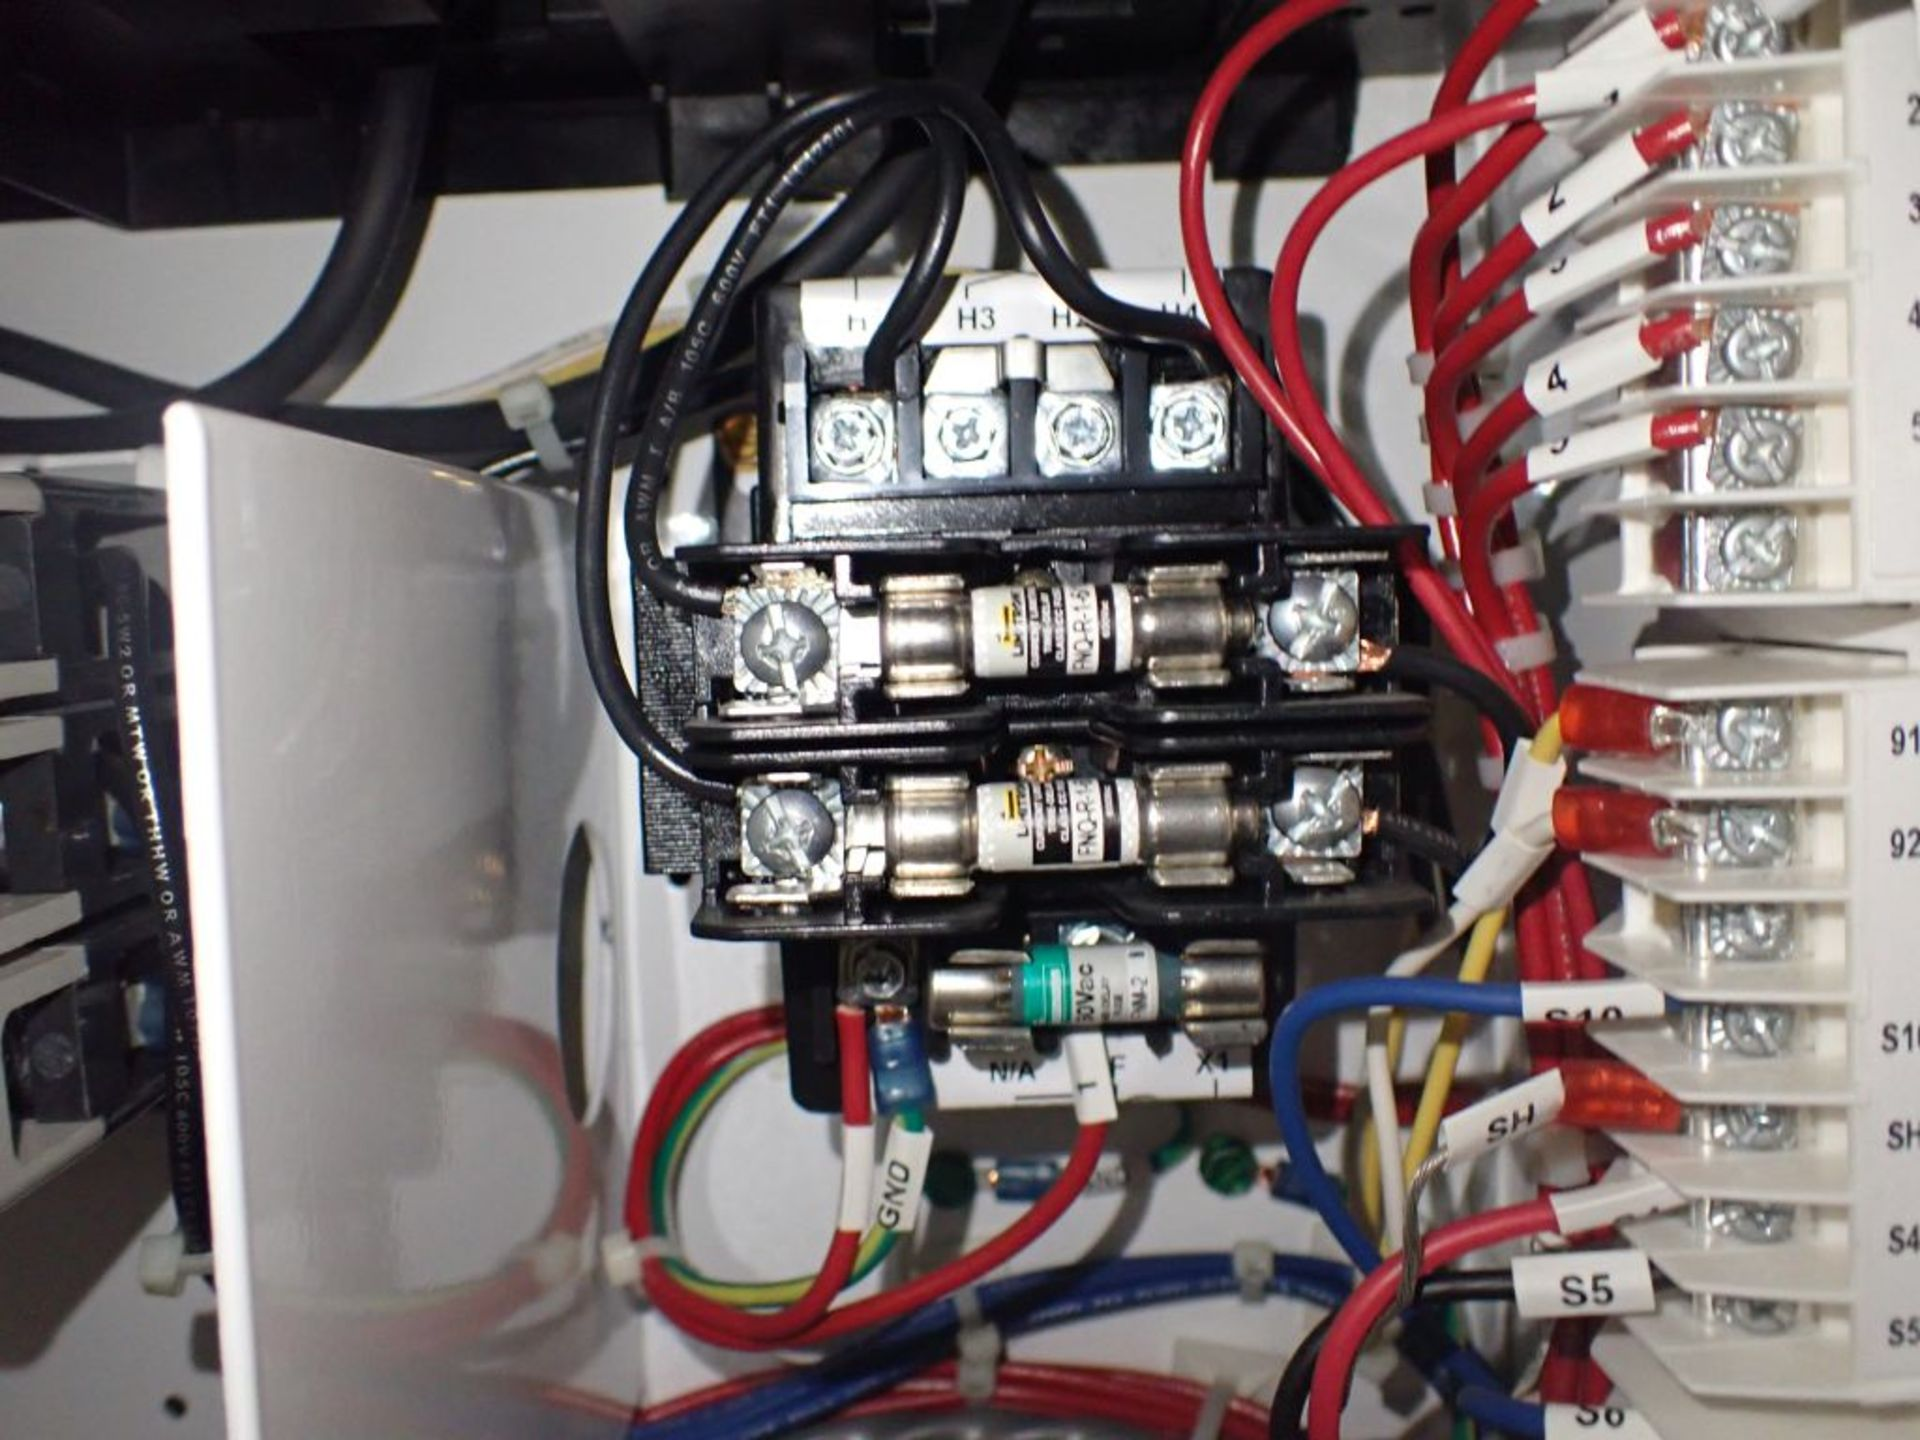 Eaton Freedom 2100 Series Motor Control Center   (4) SVX900-30A, with Eaton AF Drives, SVX9000, - Image 35 of 60